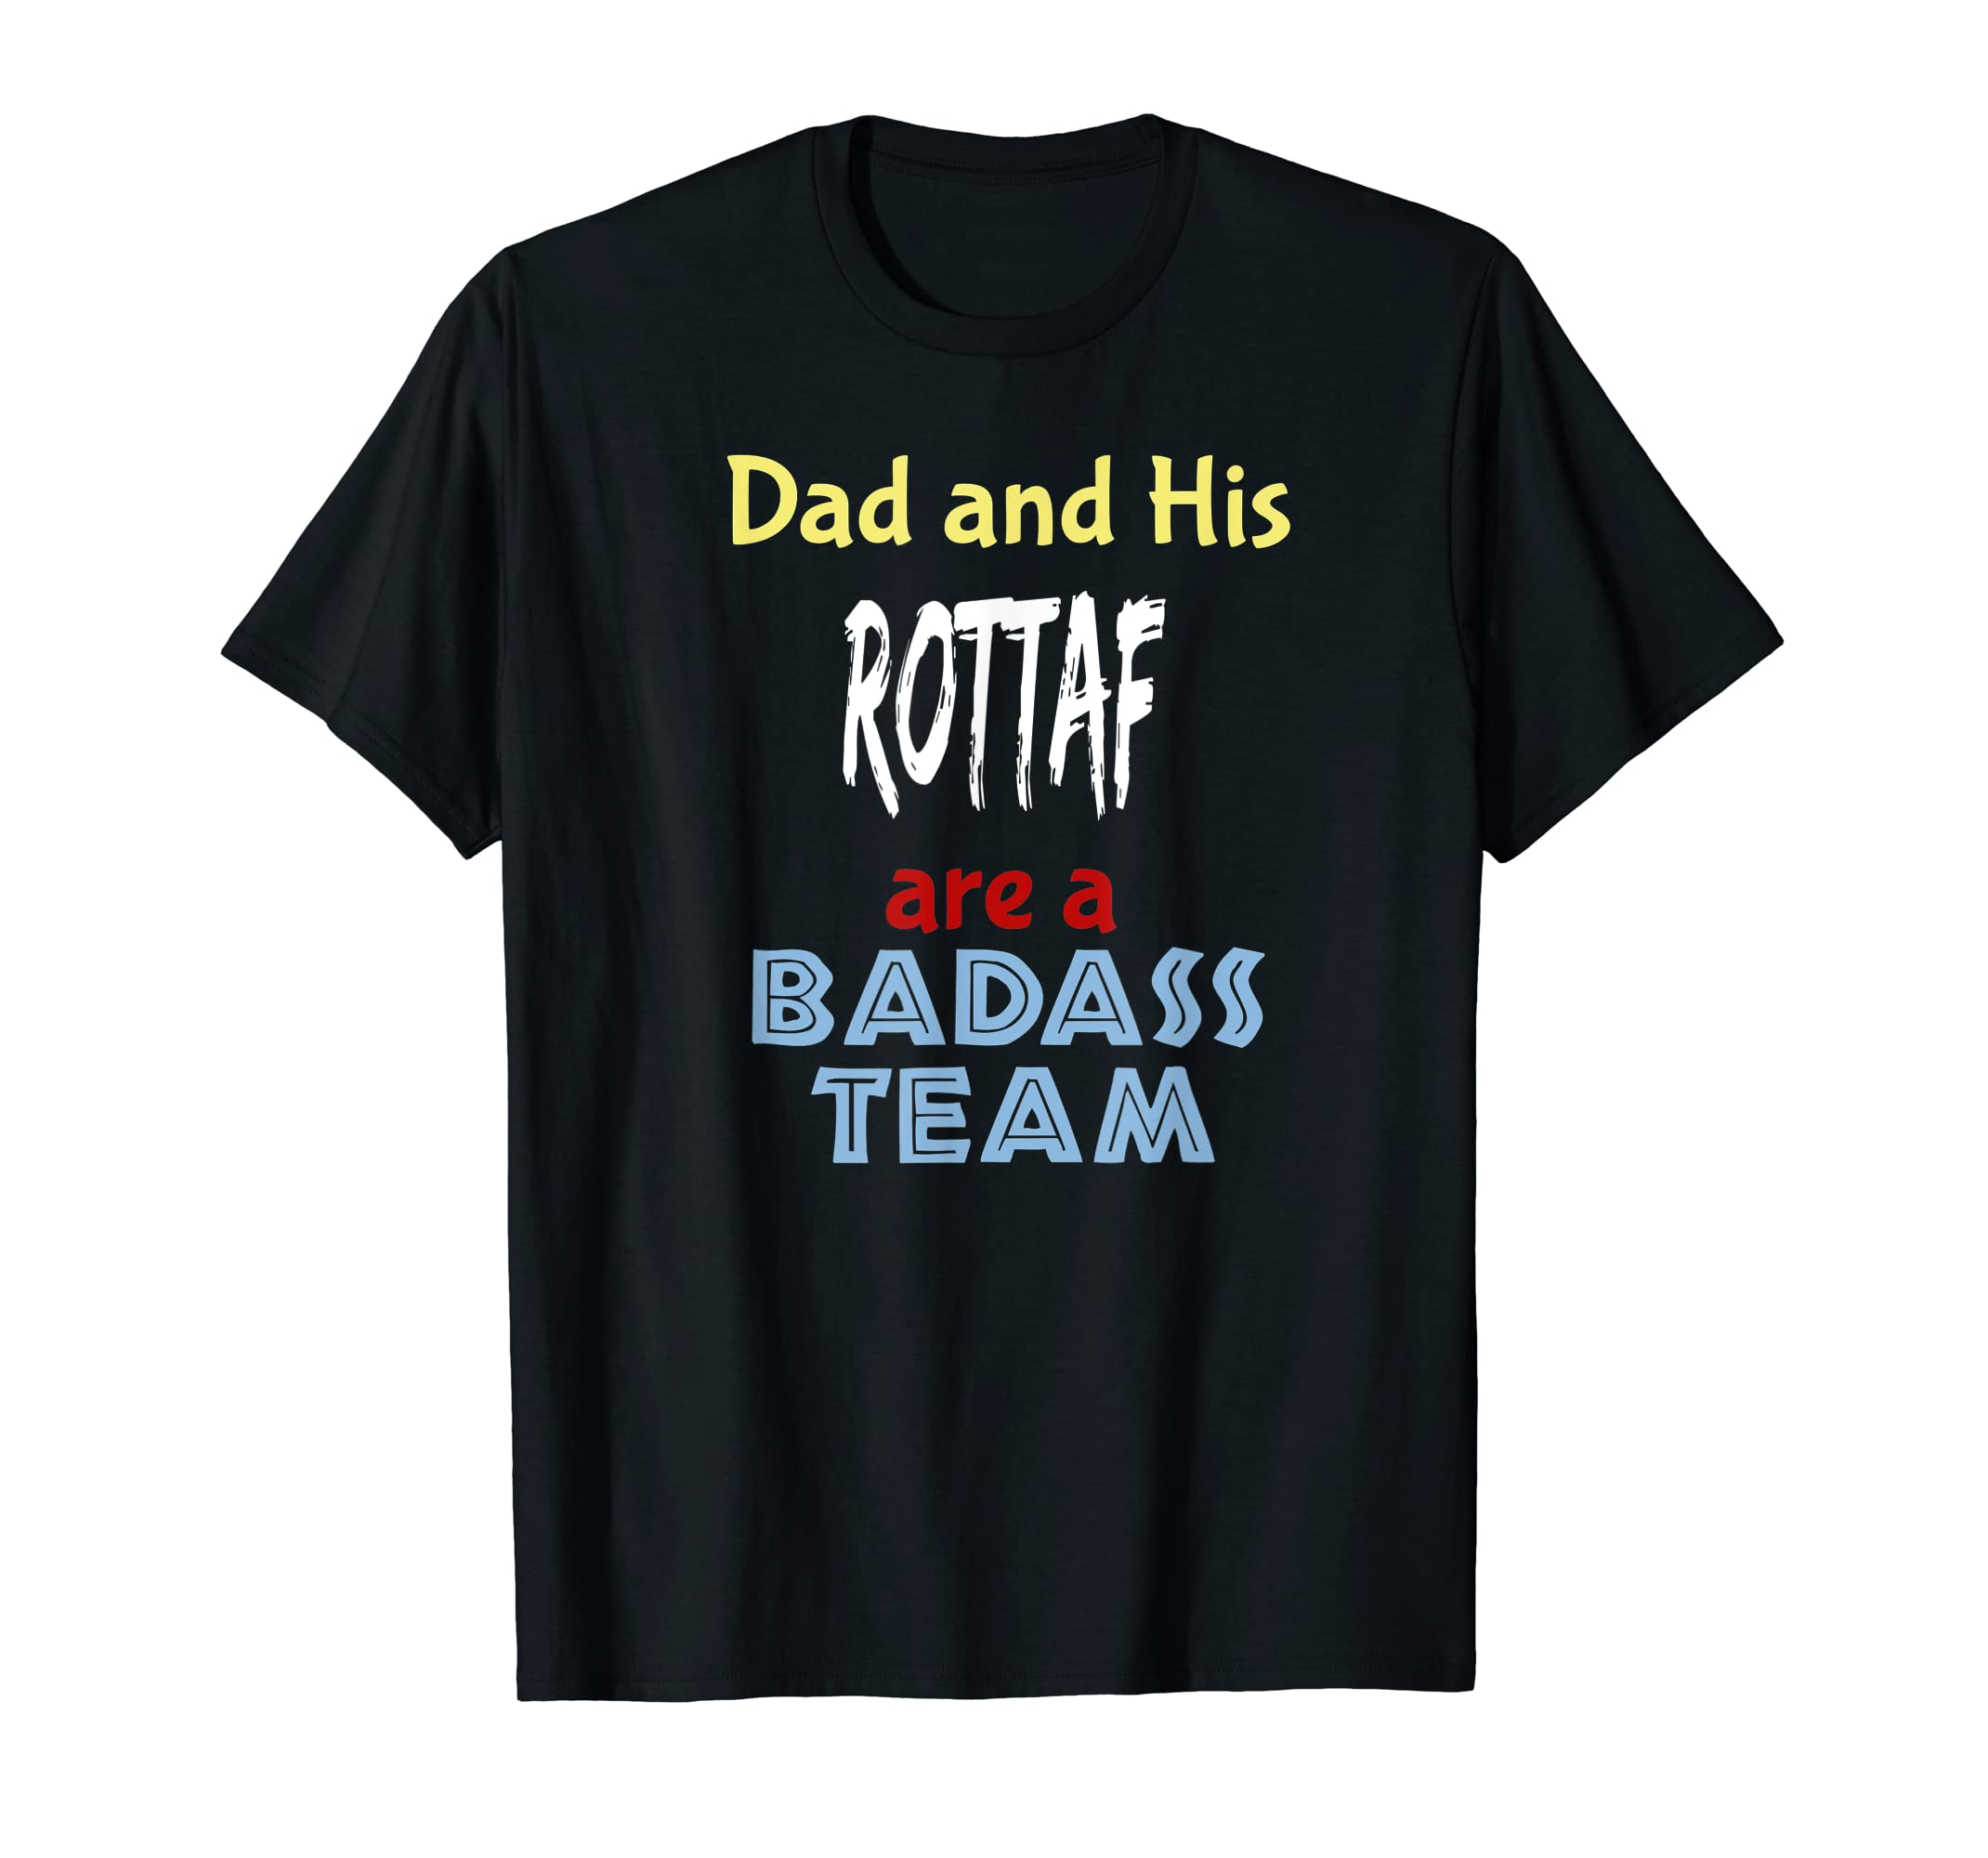 Mens Rottaf Dog Shirt Love Rottweiler + Afghan Hound = T-Shirt-Men's T-Shirt-Black